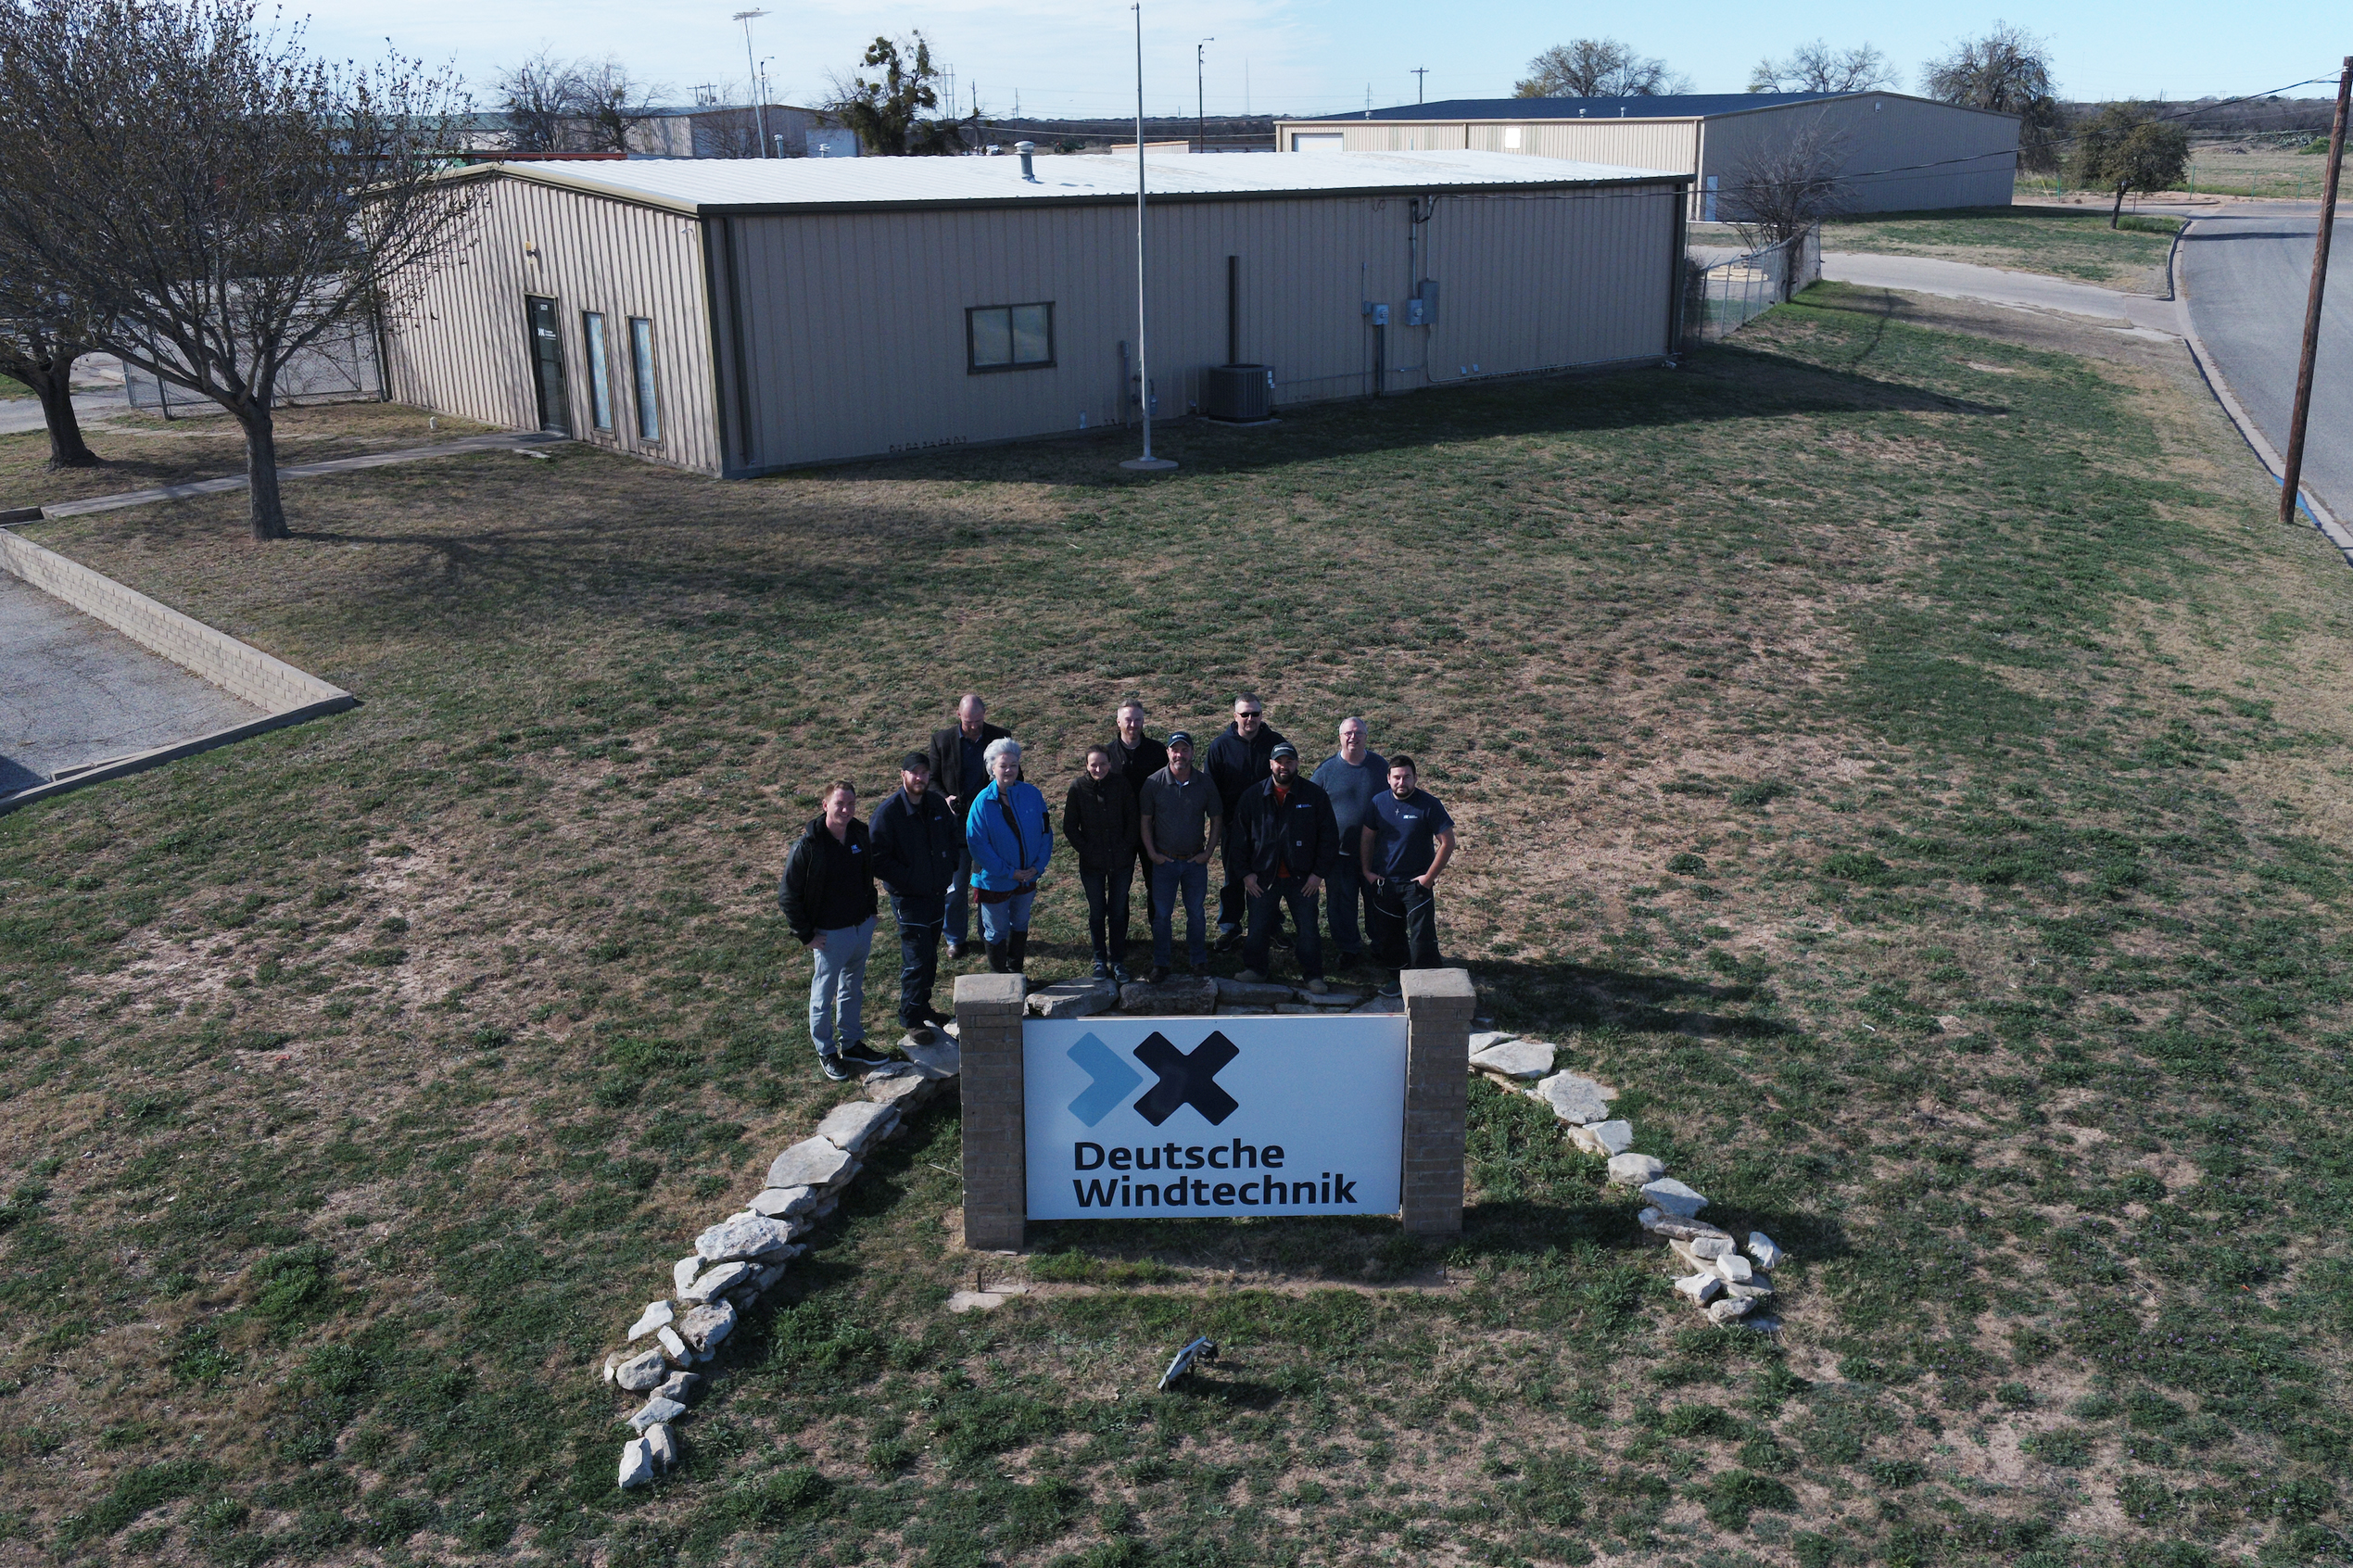 Deutsche Windtechnik Inc. opens Customer Service Office